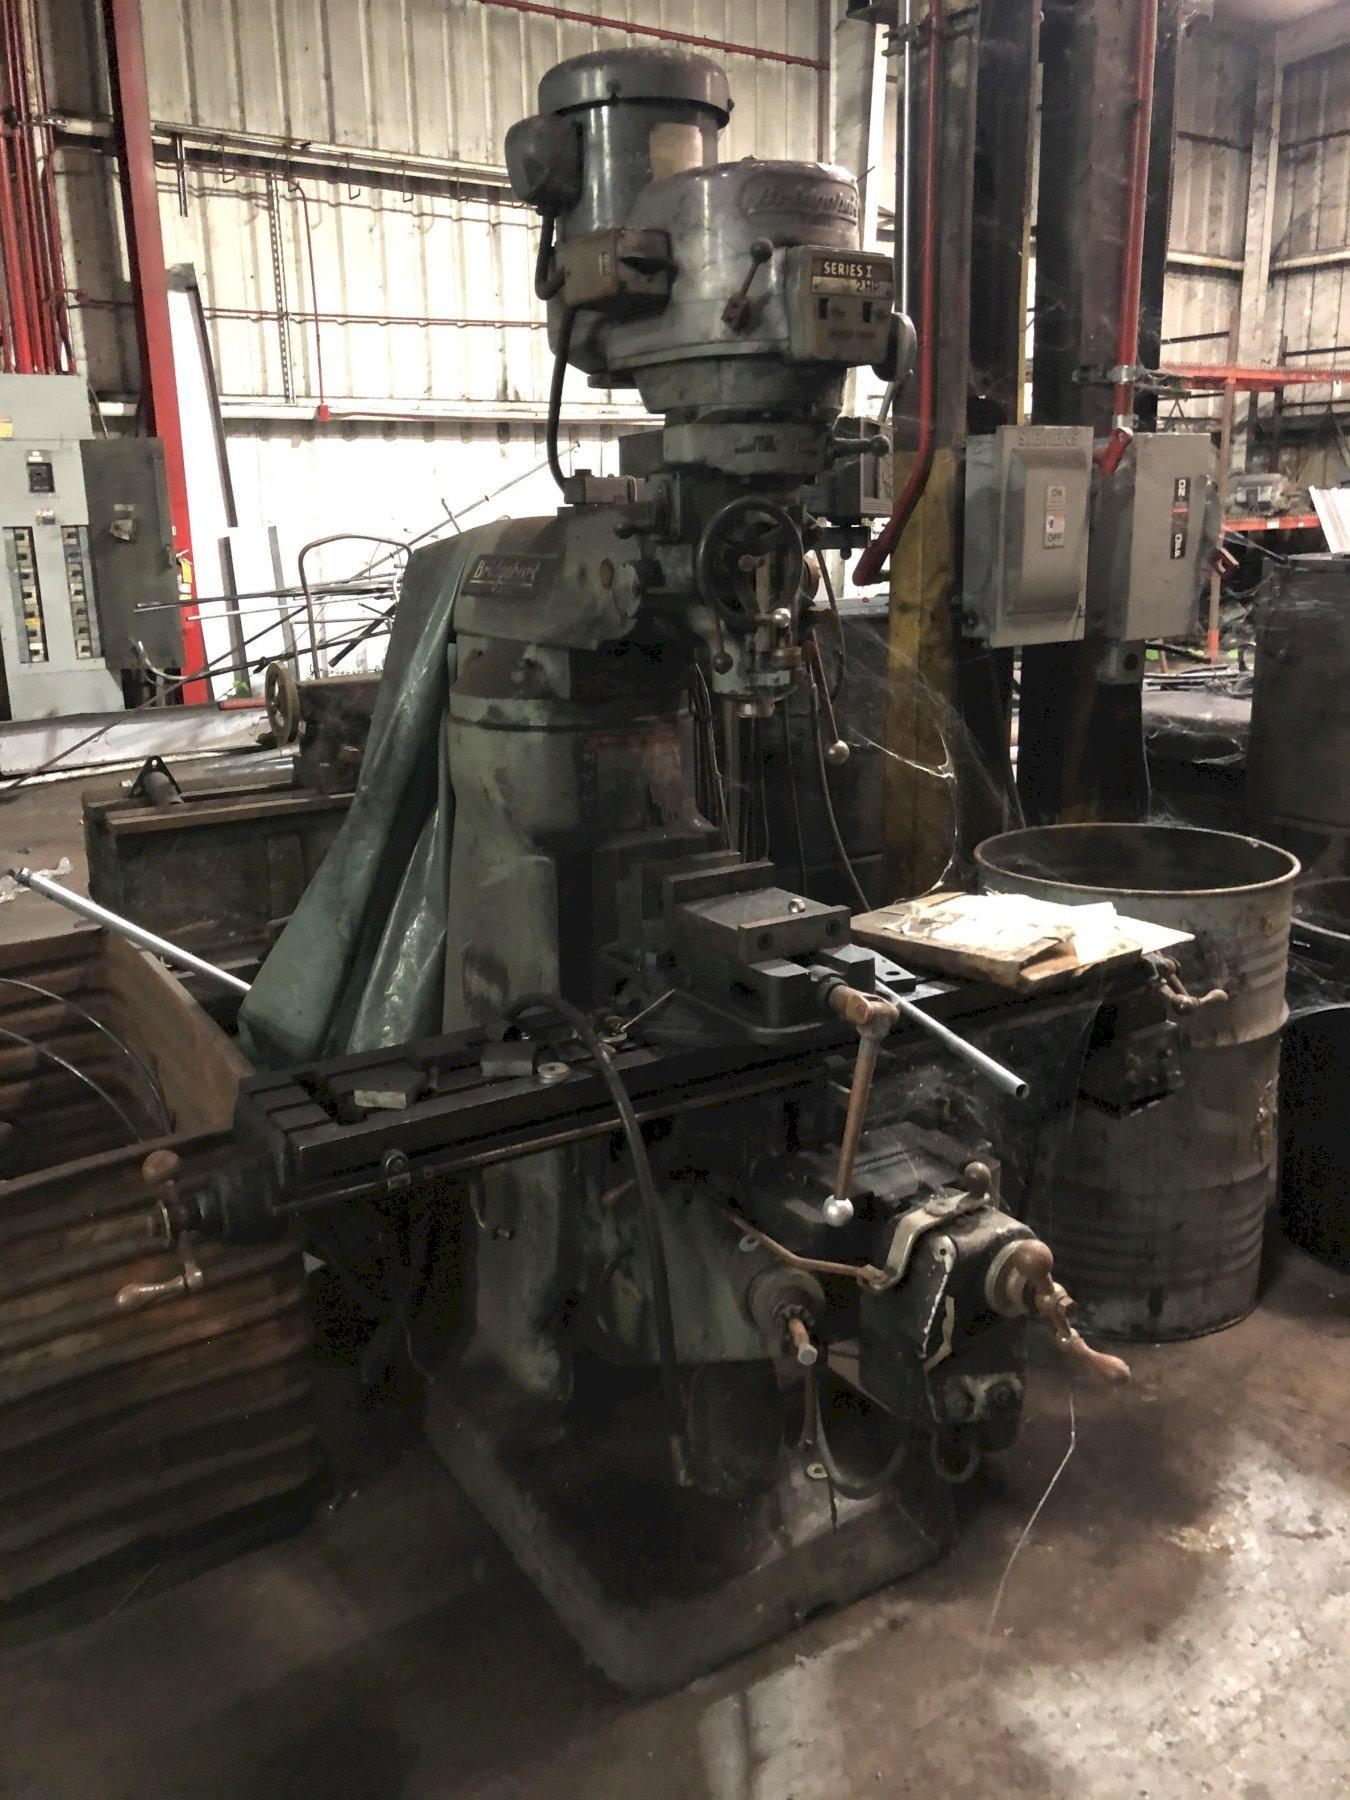 BRIDGEPORT 2 HP SERIES I VARIABLE SPEED VERTICAL MILL S/N 245105 WITH 2 AXIS DRO